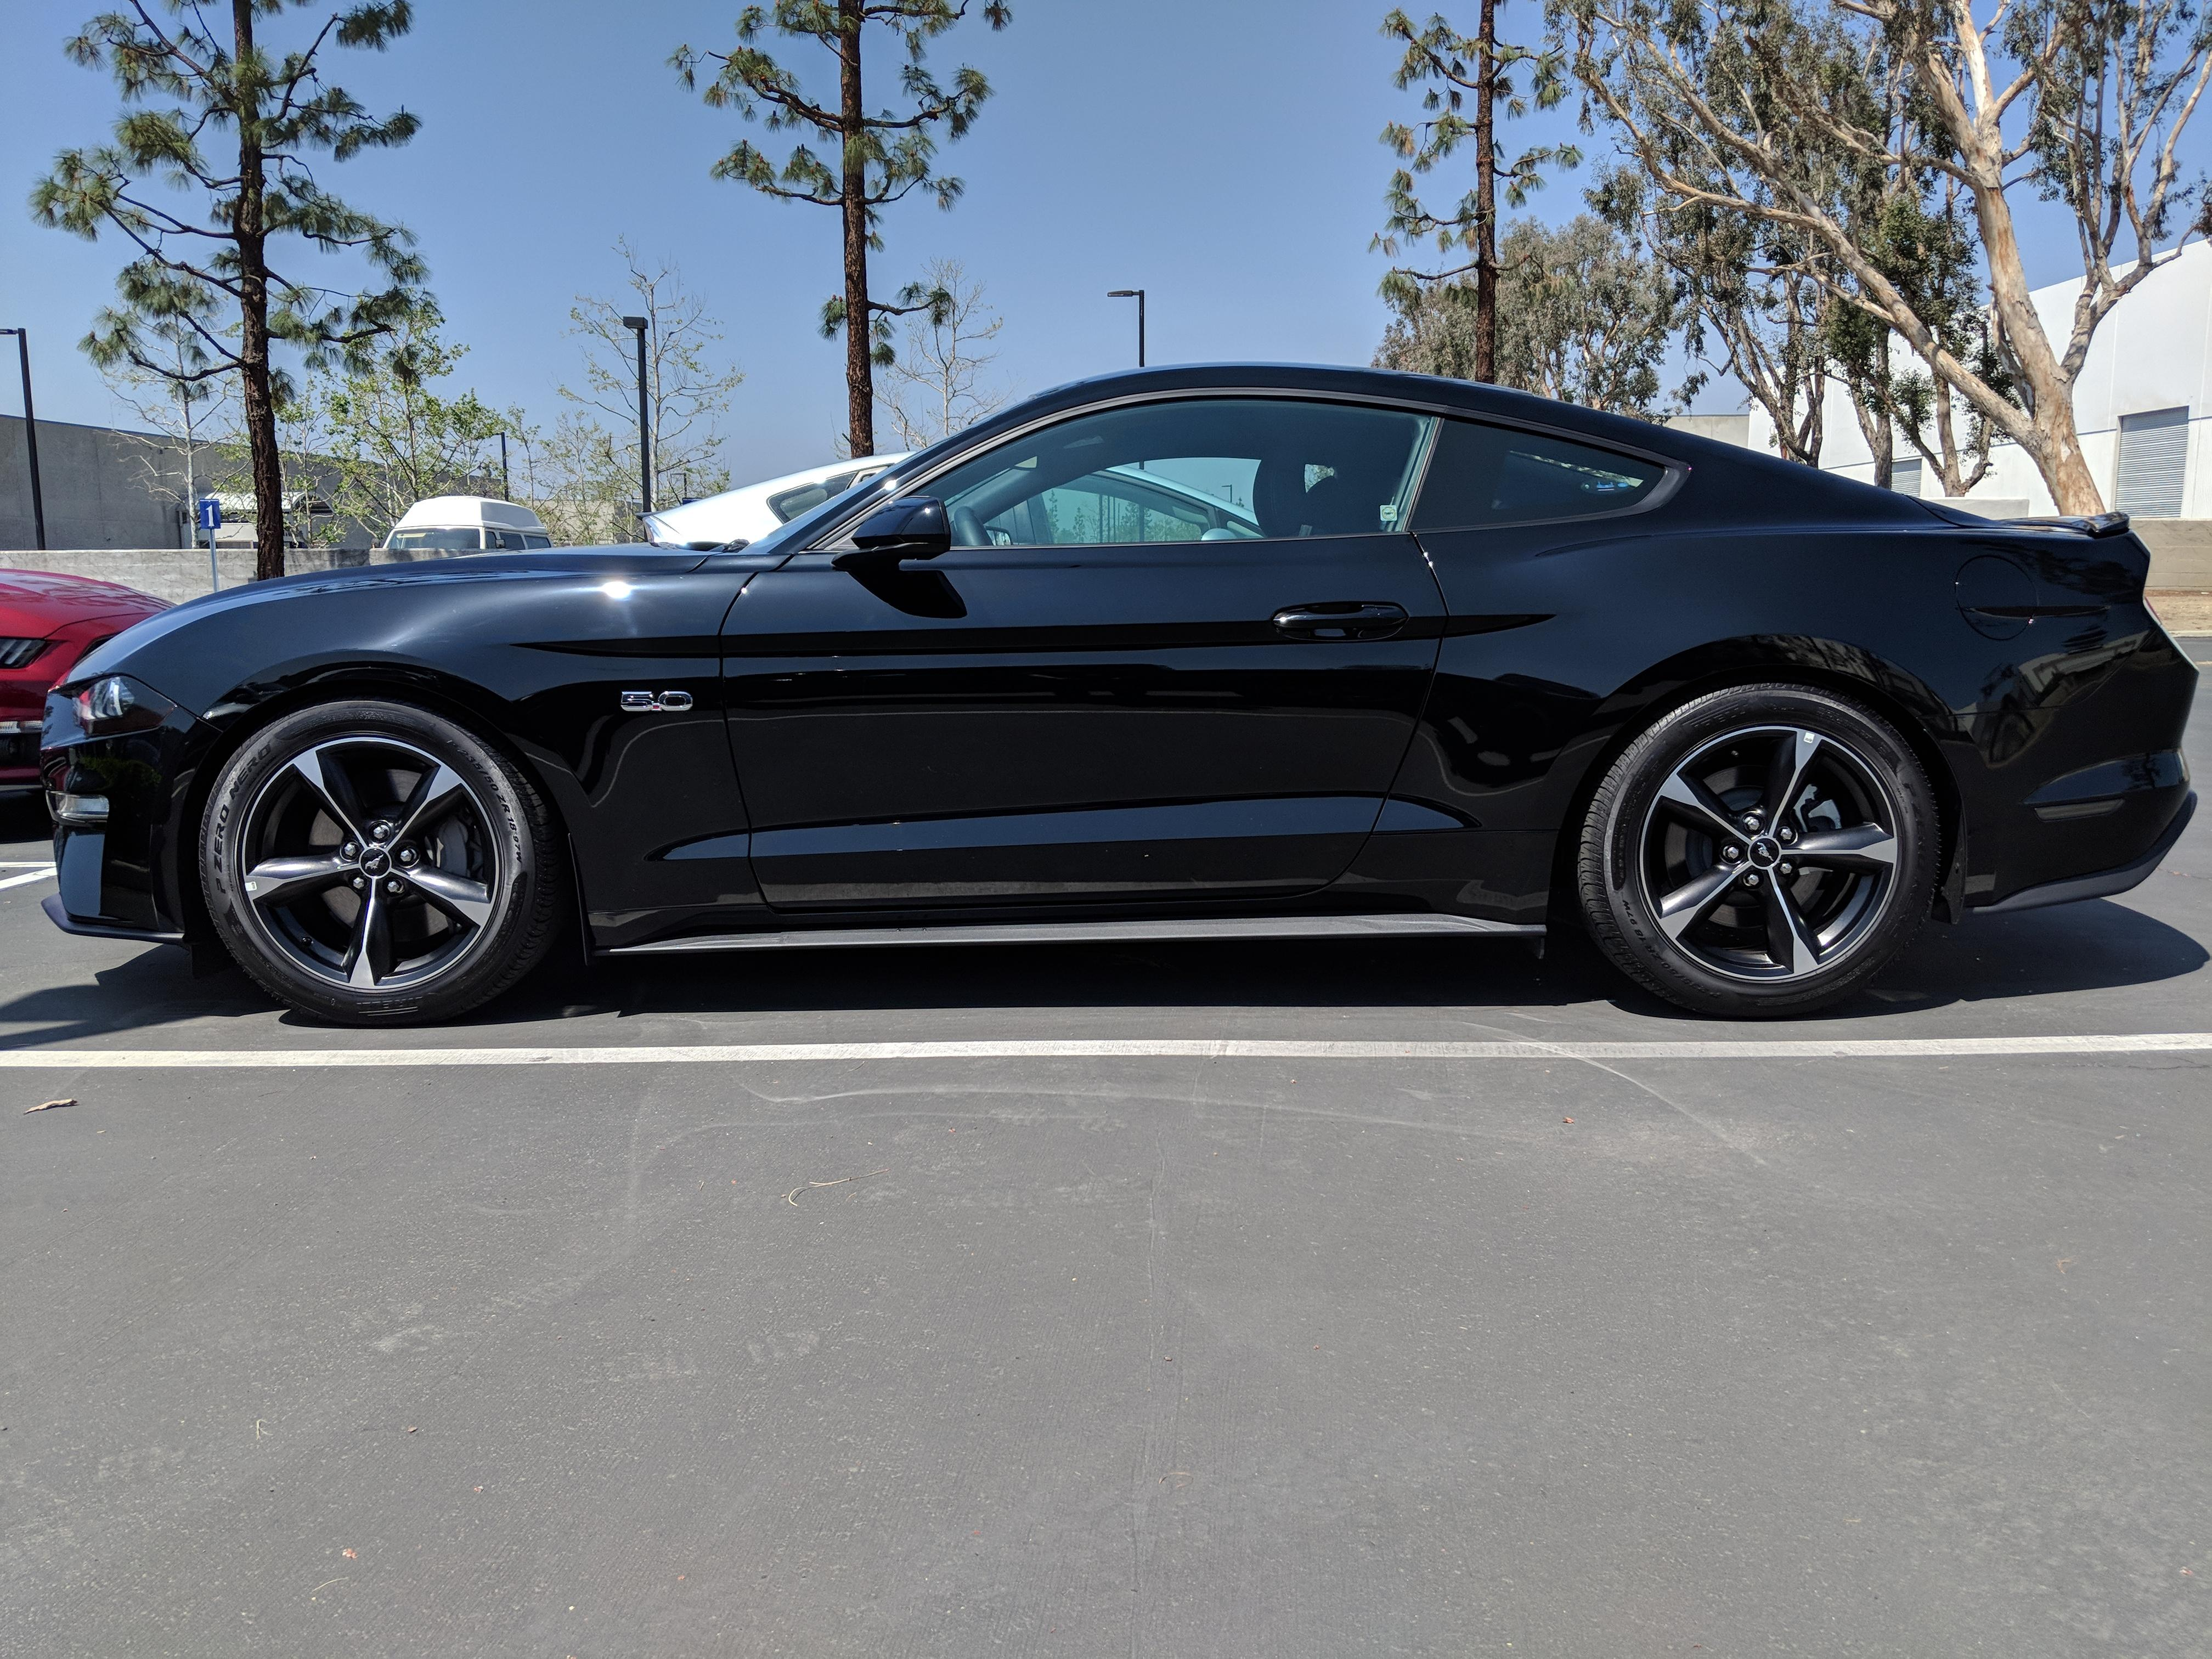 2015 18 Mustang Steeda Sport Springs Progressive Rate Gt V6 Focus Fuse Box Cover These Brought Both The Front And Rear Down To Exactly 275 From Floor Max Outside Height Of Fenders Note Im Using 35mmn Hub Adapters At